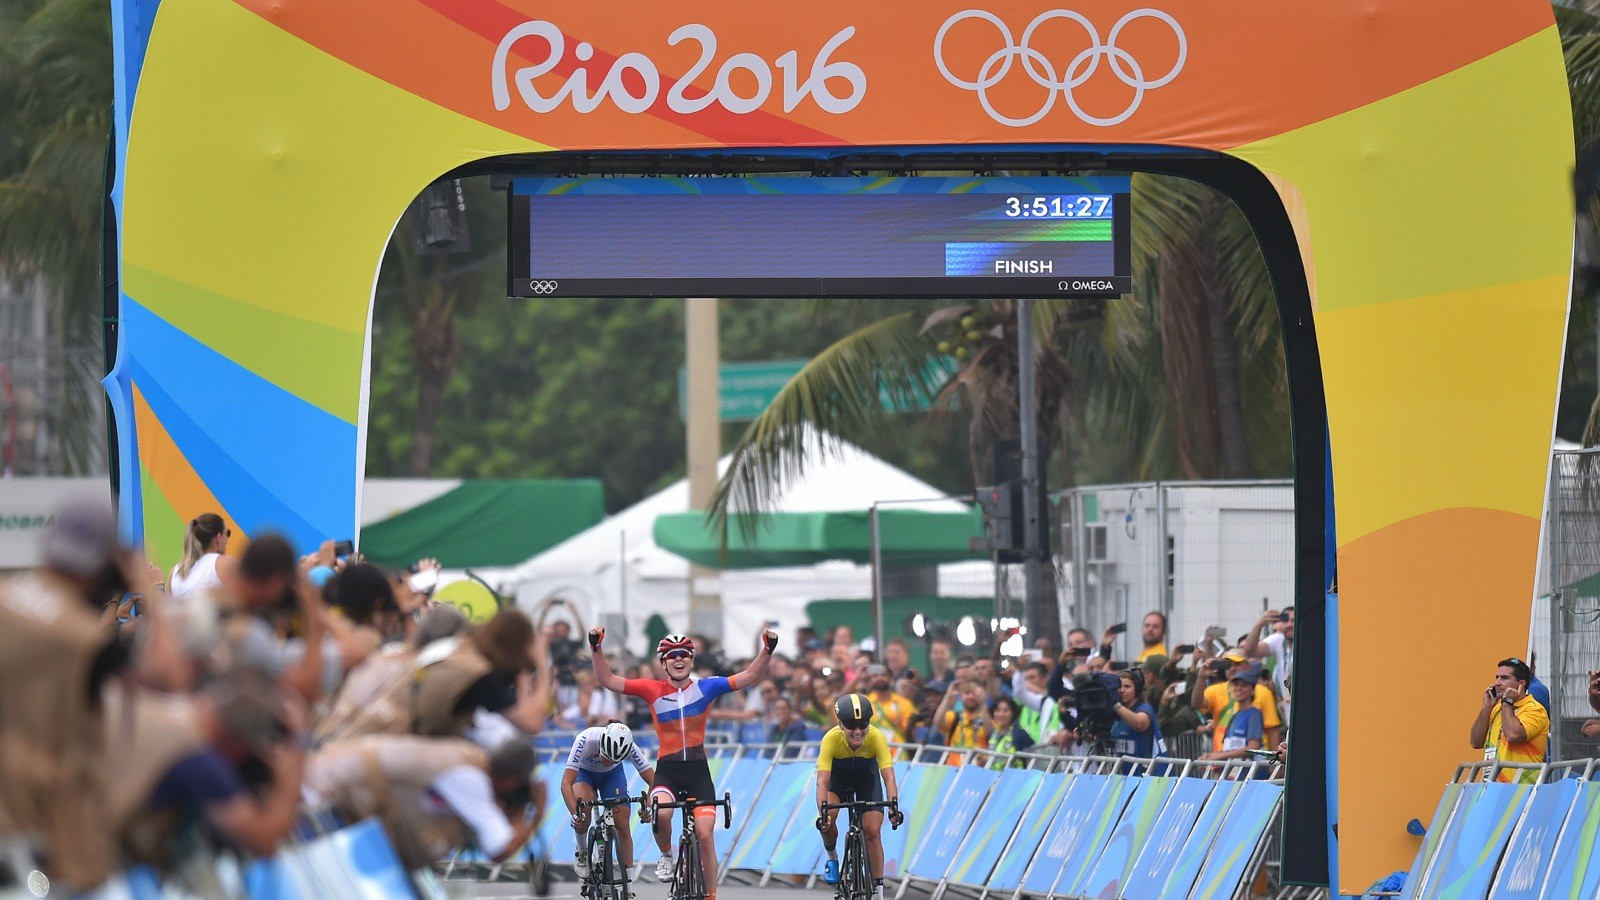 List of words bike brands can't mention during Olympics: Olympics, gold, silver, bronze, effort, performance, Rio, etc., etc.